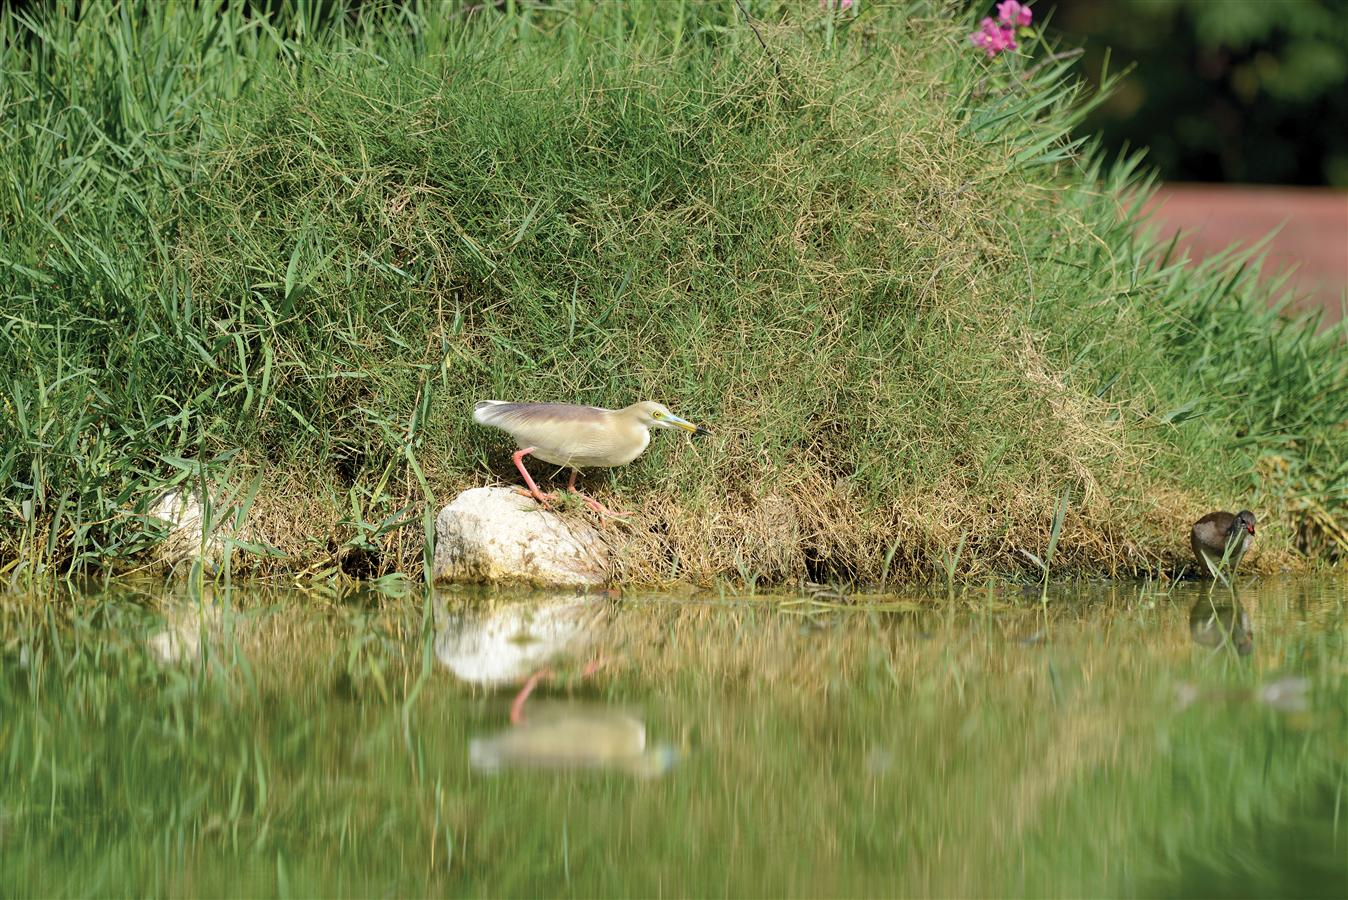 They are a common sight in the vicinity of the lake in the Dalikhana. With the introduction of fingerlings in the lake in 2013, their population has increased substantially within the Estate.